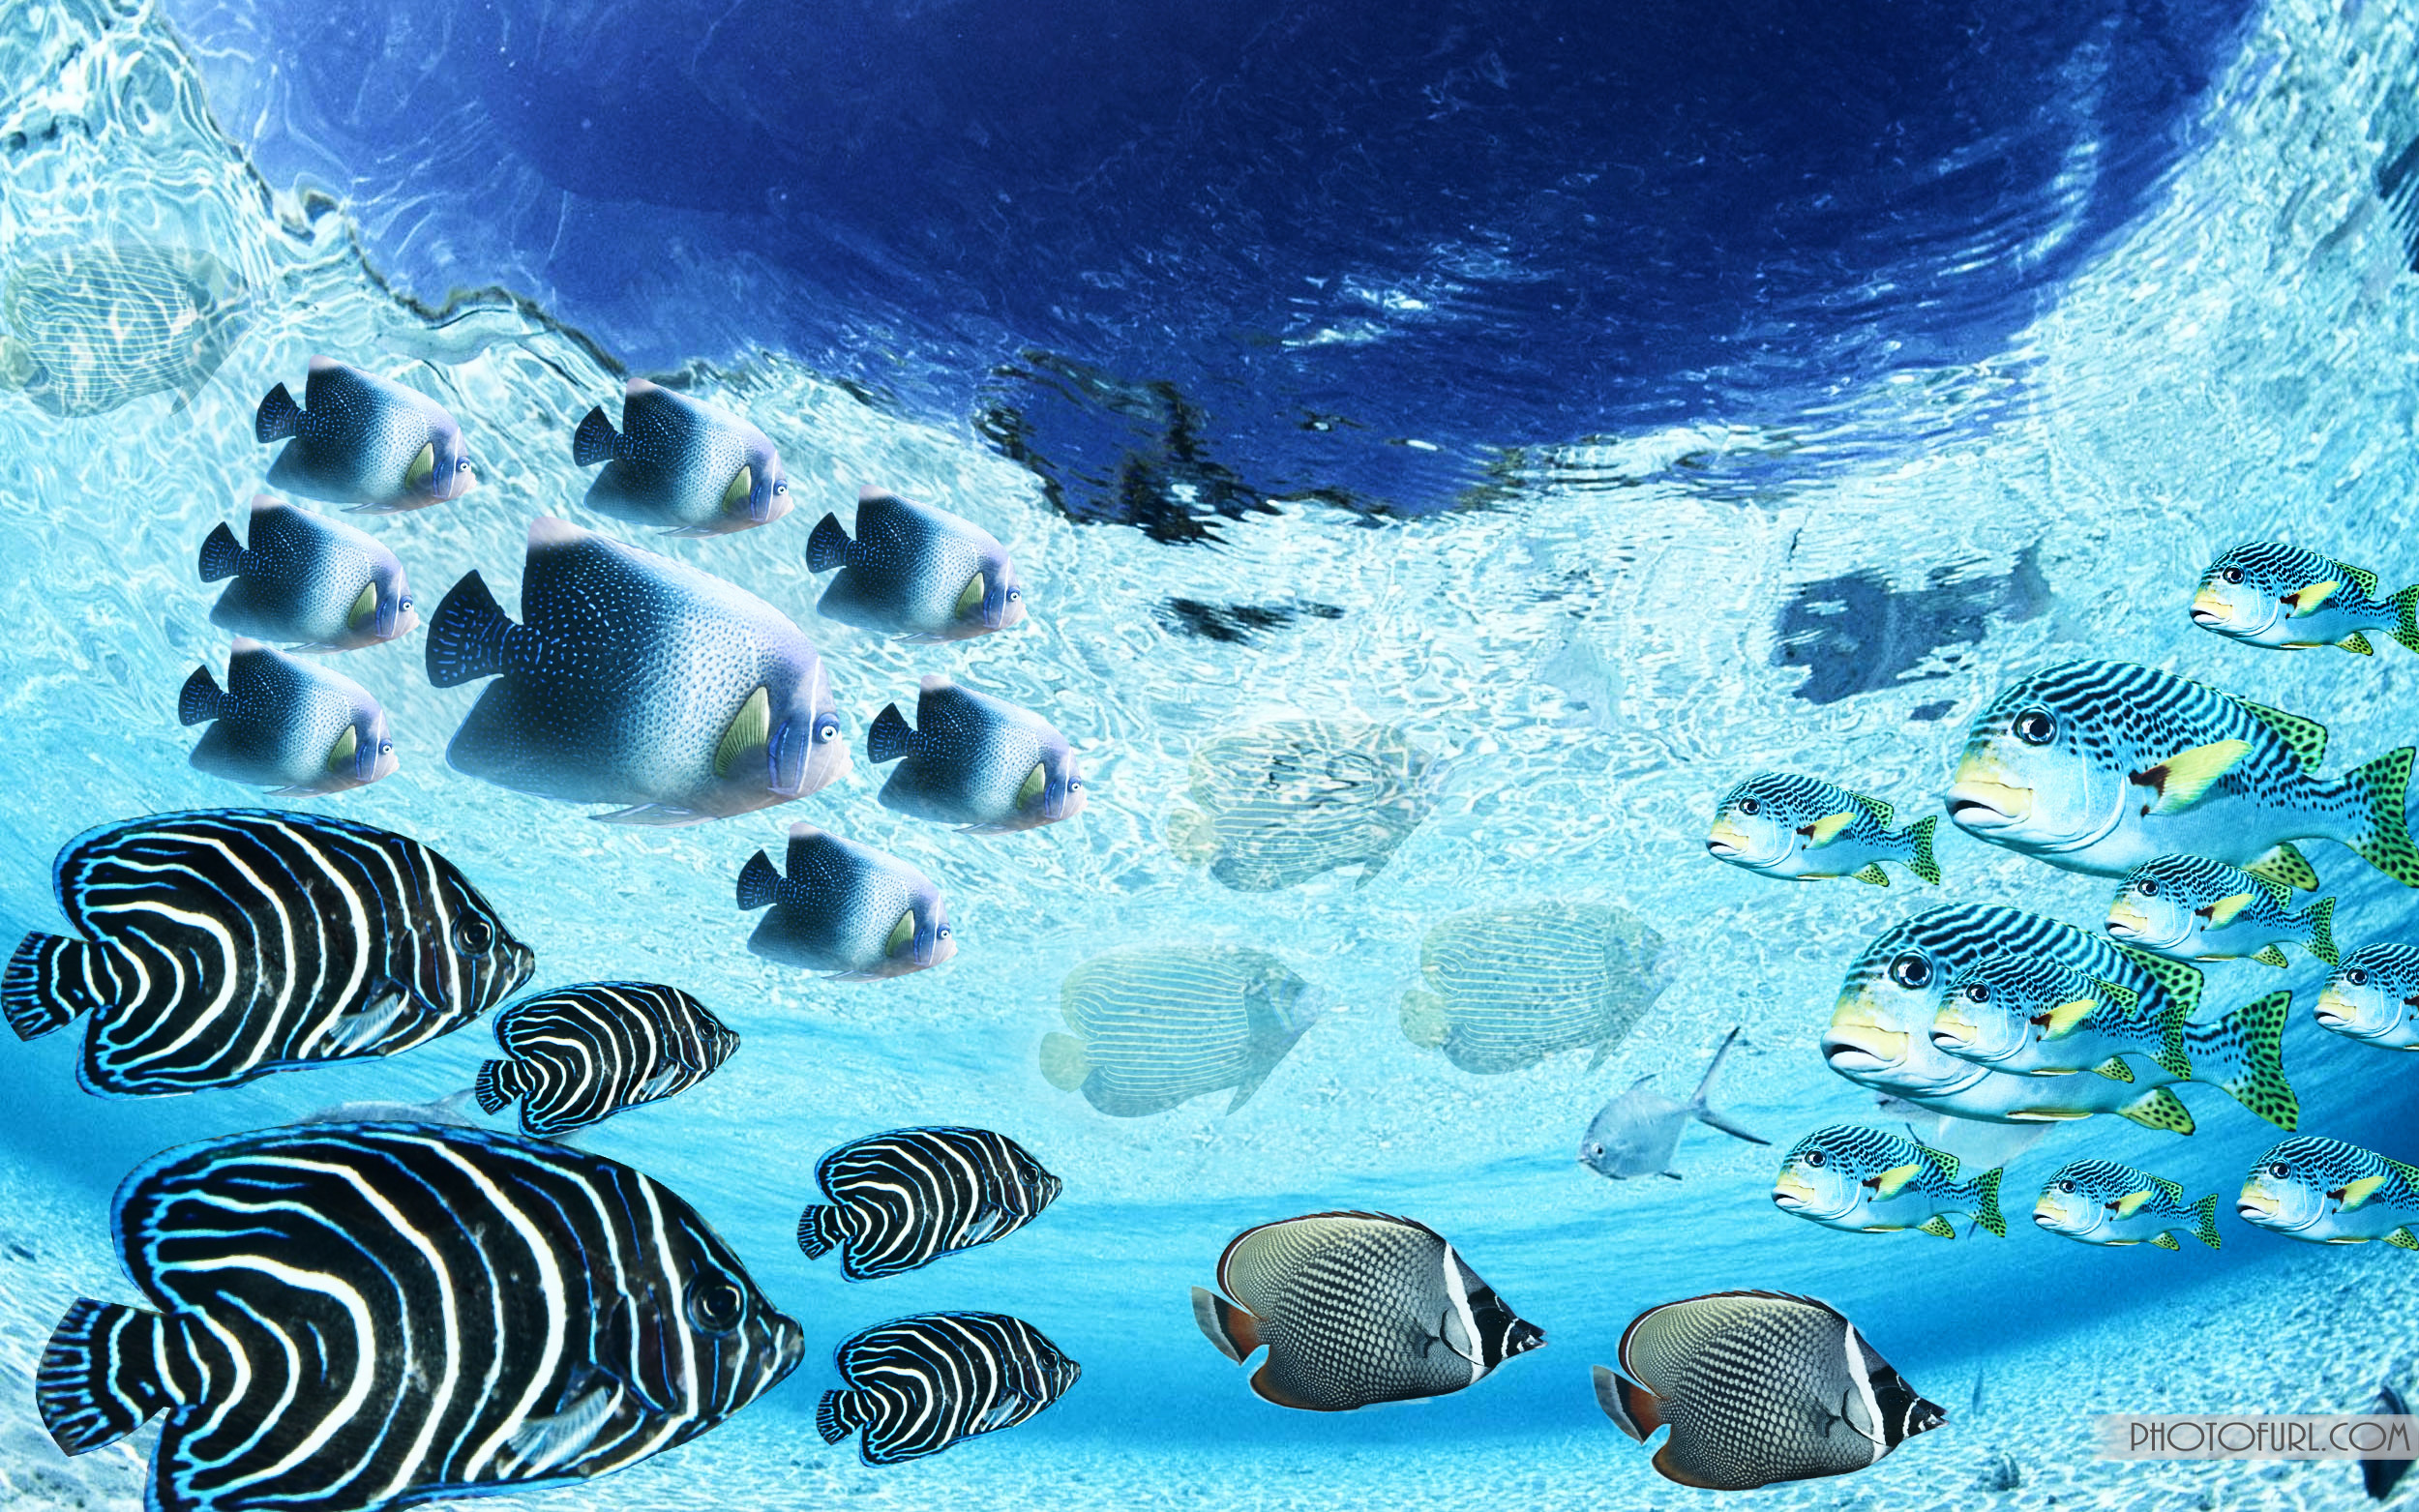 Res: 2500x1563, The Most Beautiful And Colorful Aquatic Sea Creatures Life Wallpaper For  Computer And Laptops Desktops